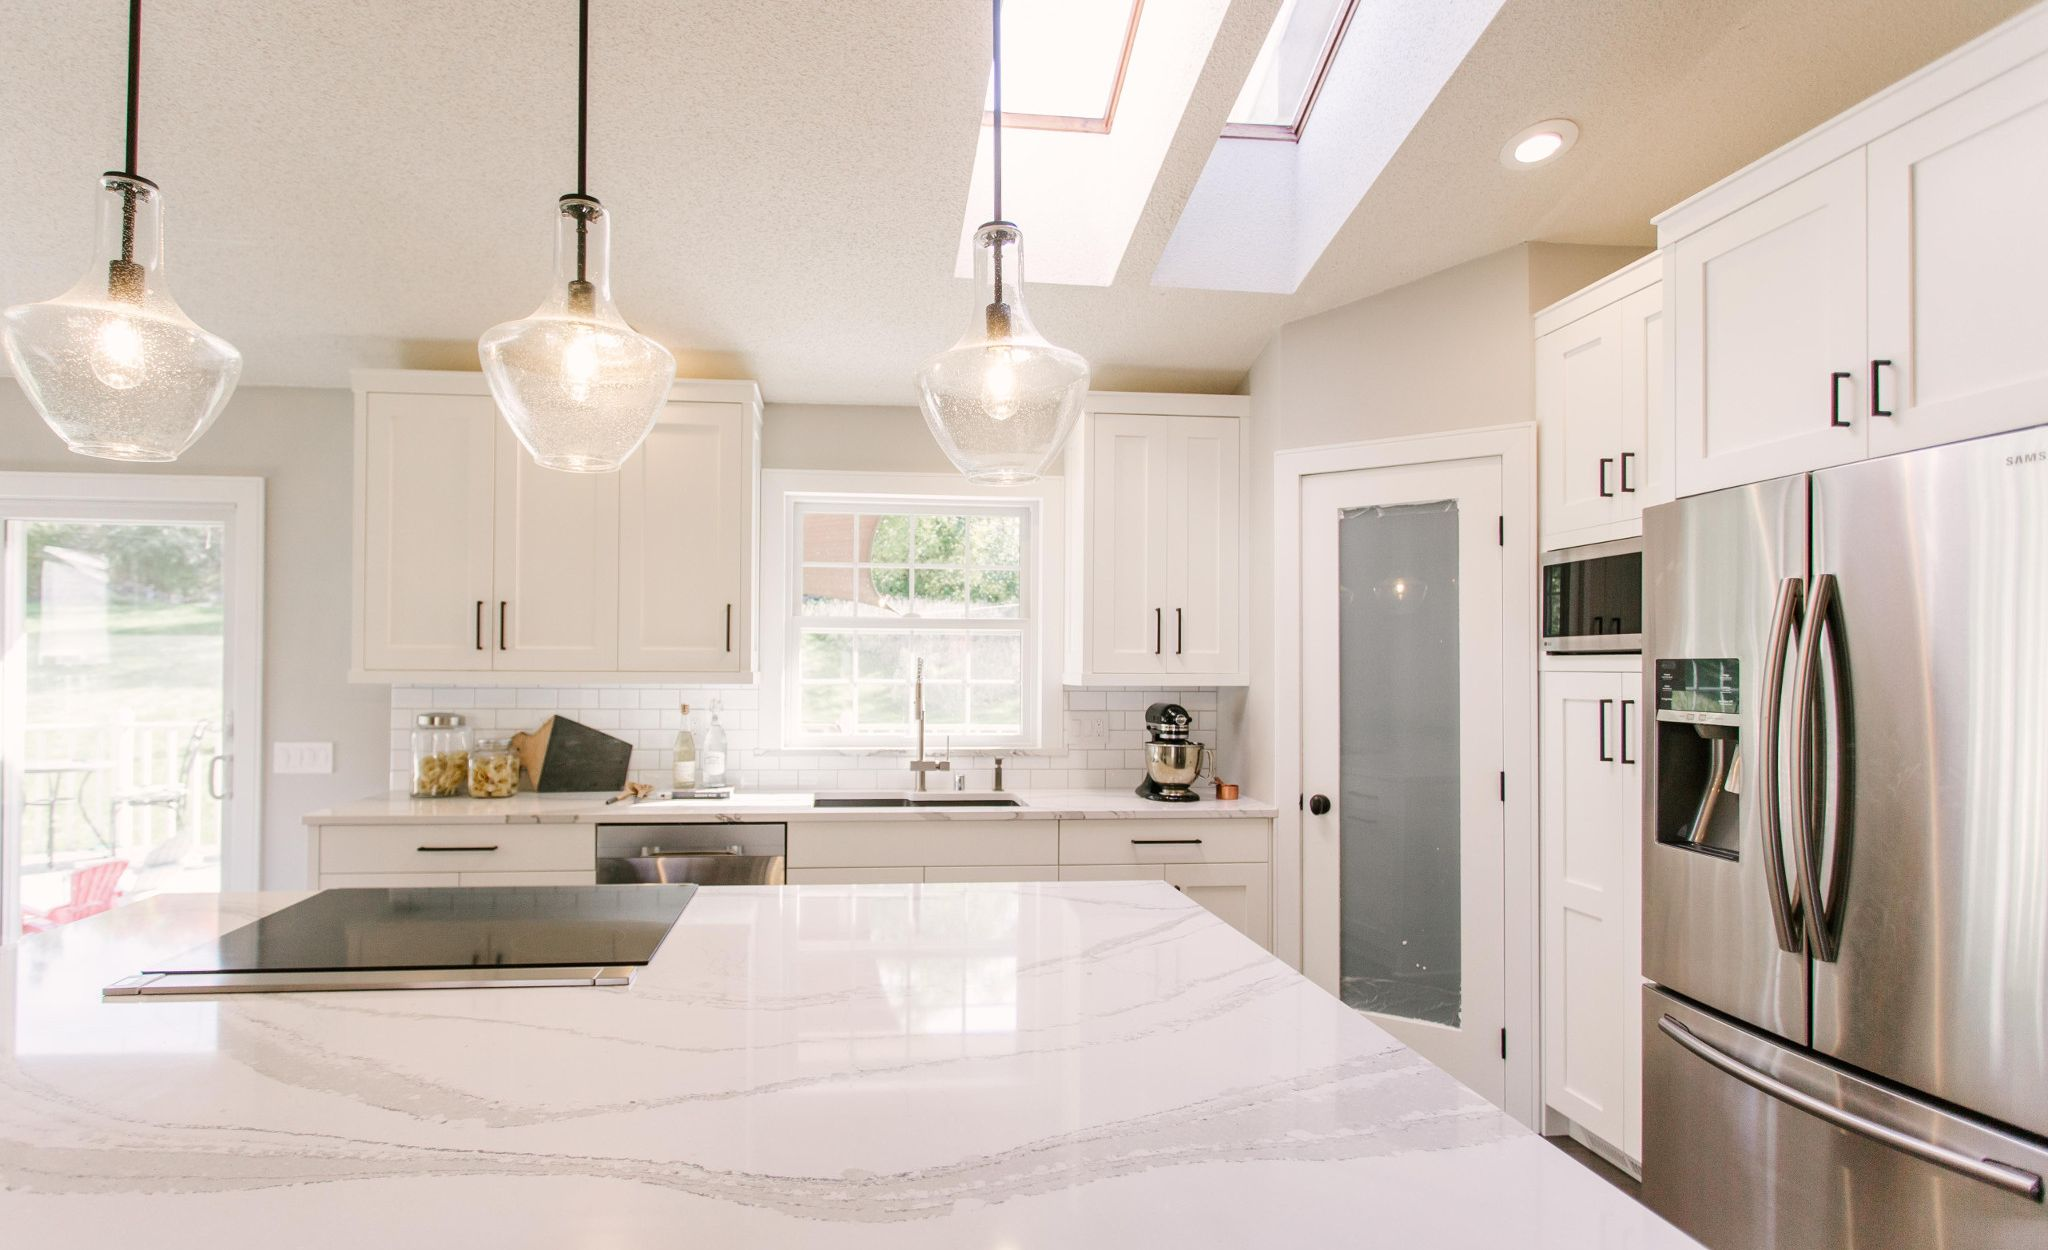 Pair Cambria Brittanicca with a classic white subway tile.